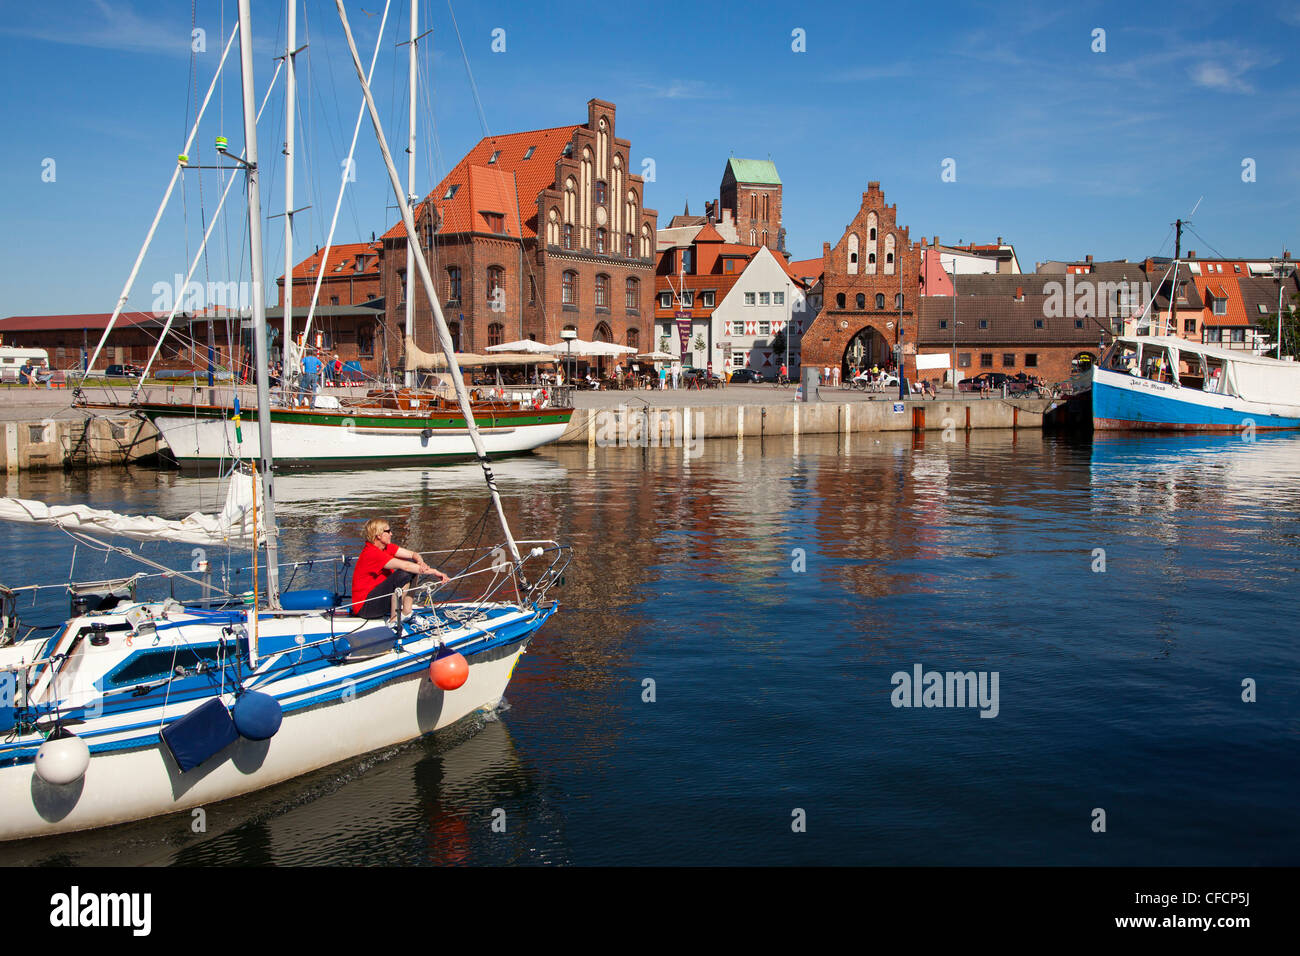 Sailboat at the entrance of the harbour, Wismar, Baltic Sea, Mecklenburg Western-Pomerania, Germany Stock Photo